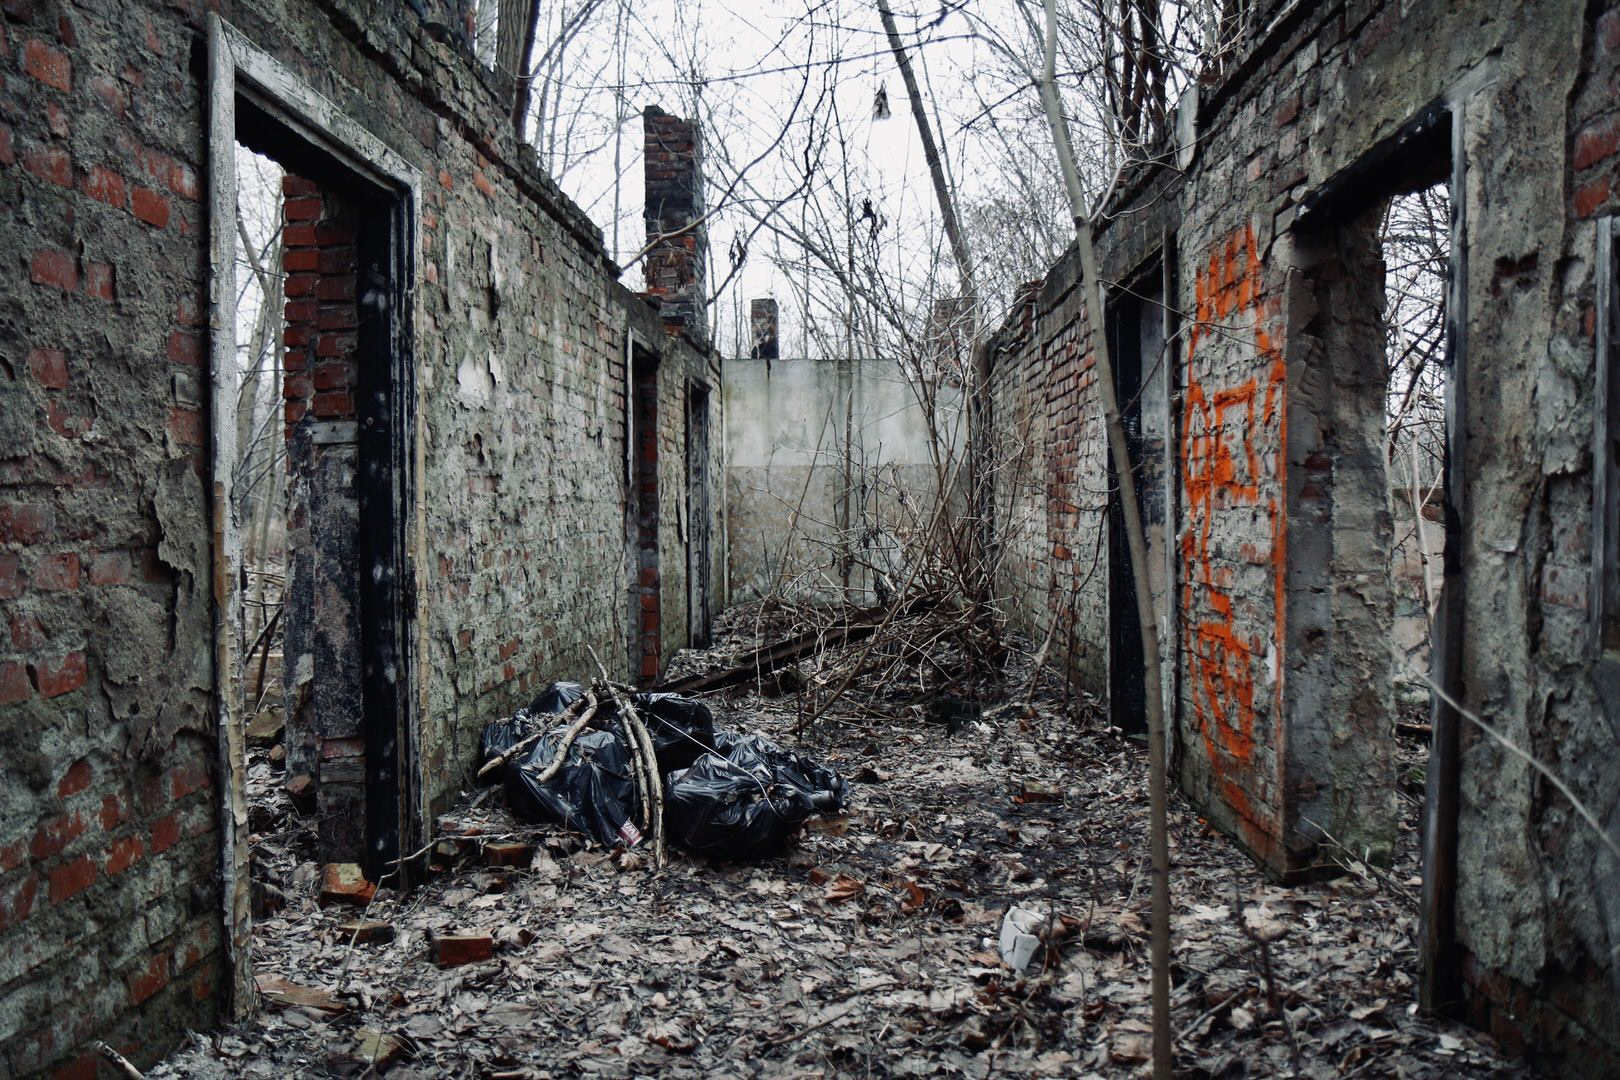 The exterior of some abandoned buildings